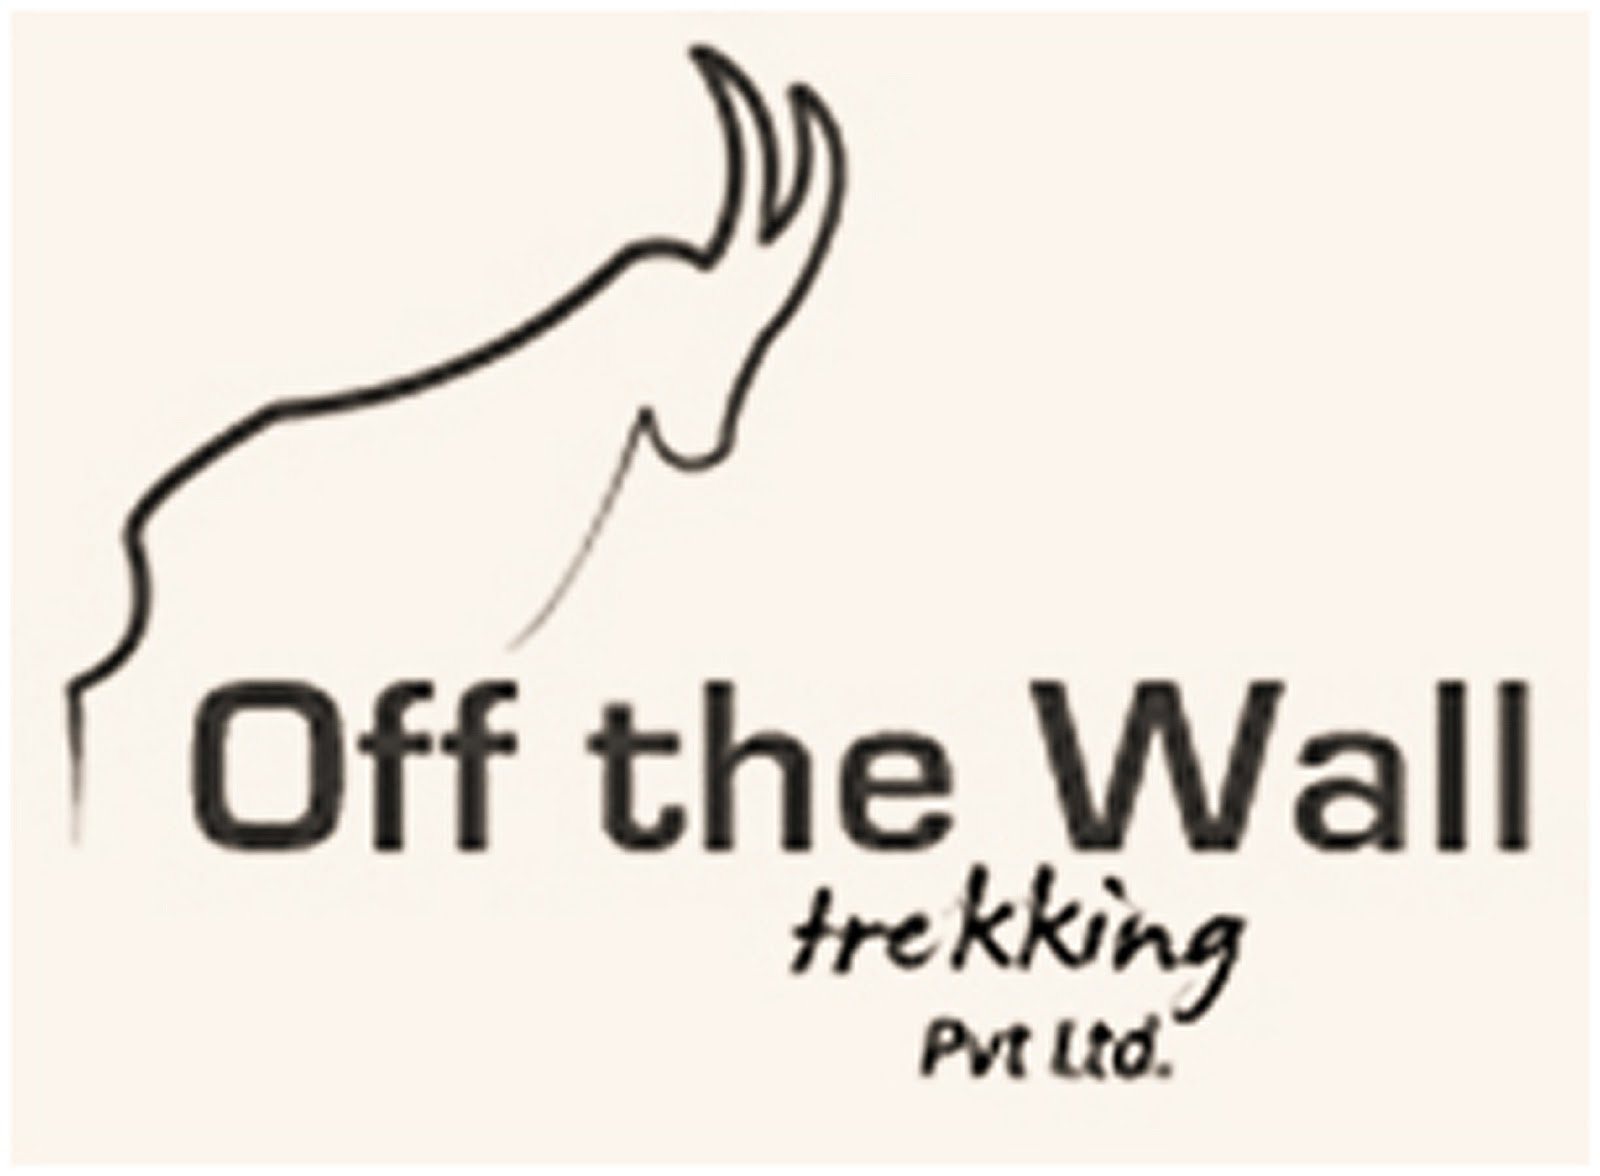 Off the Wall trekking